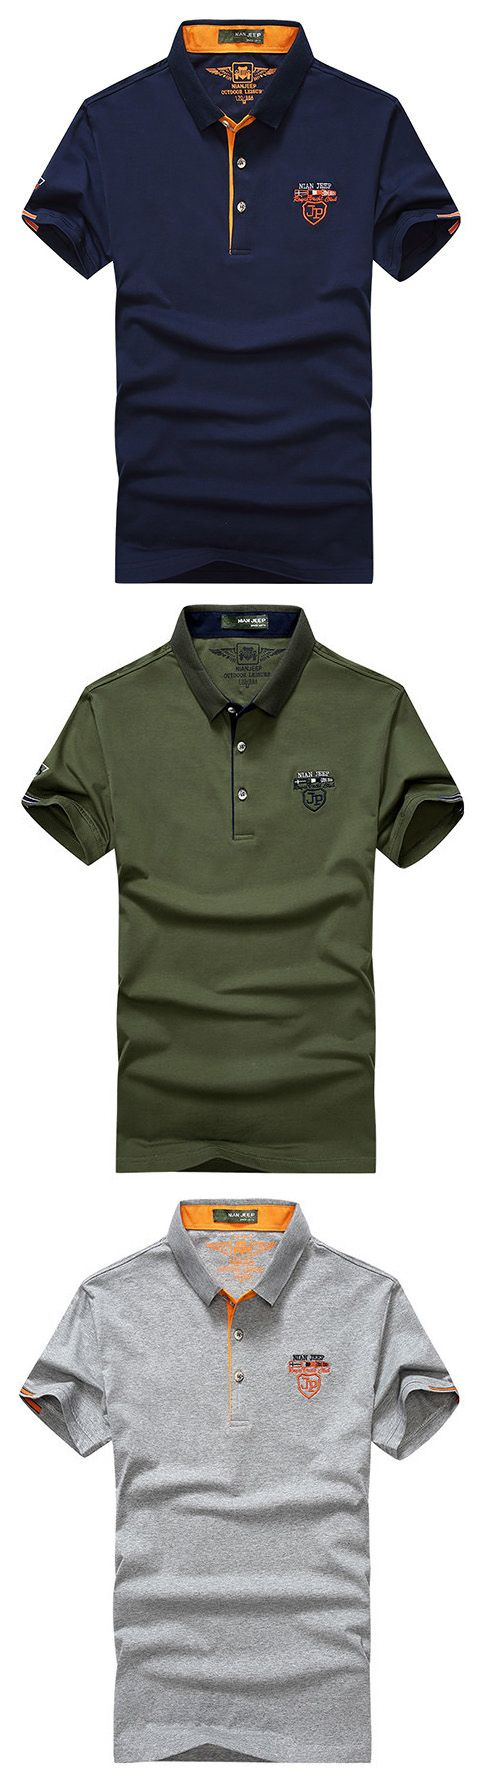 Mens Solid Color Polo Shirt Turndown Collar Short Sleeve Spring Summer Casual Tops